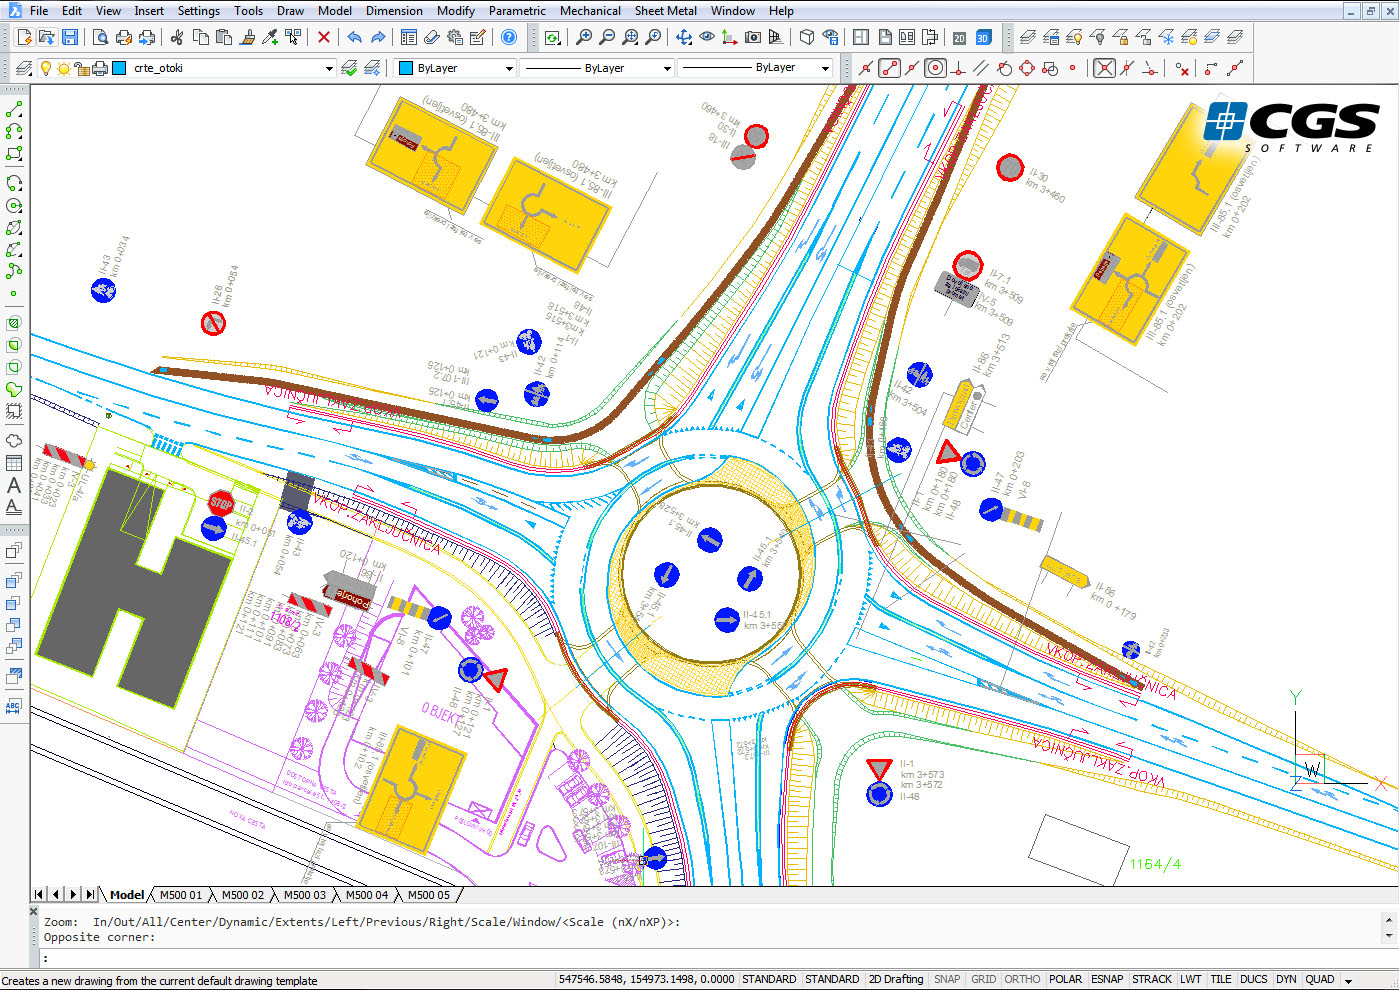 Cgs Plus Releases Plateia 2015 For Road Design Tenlinks News